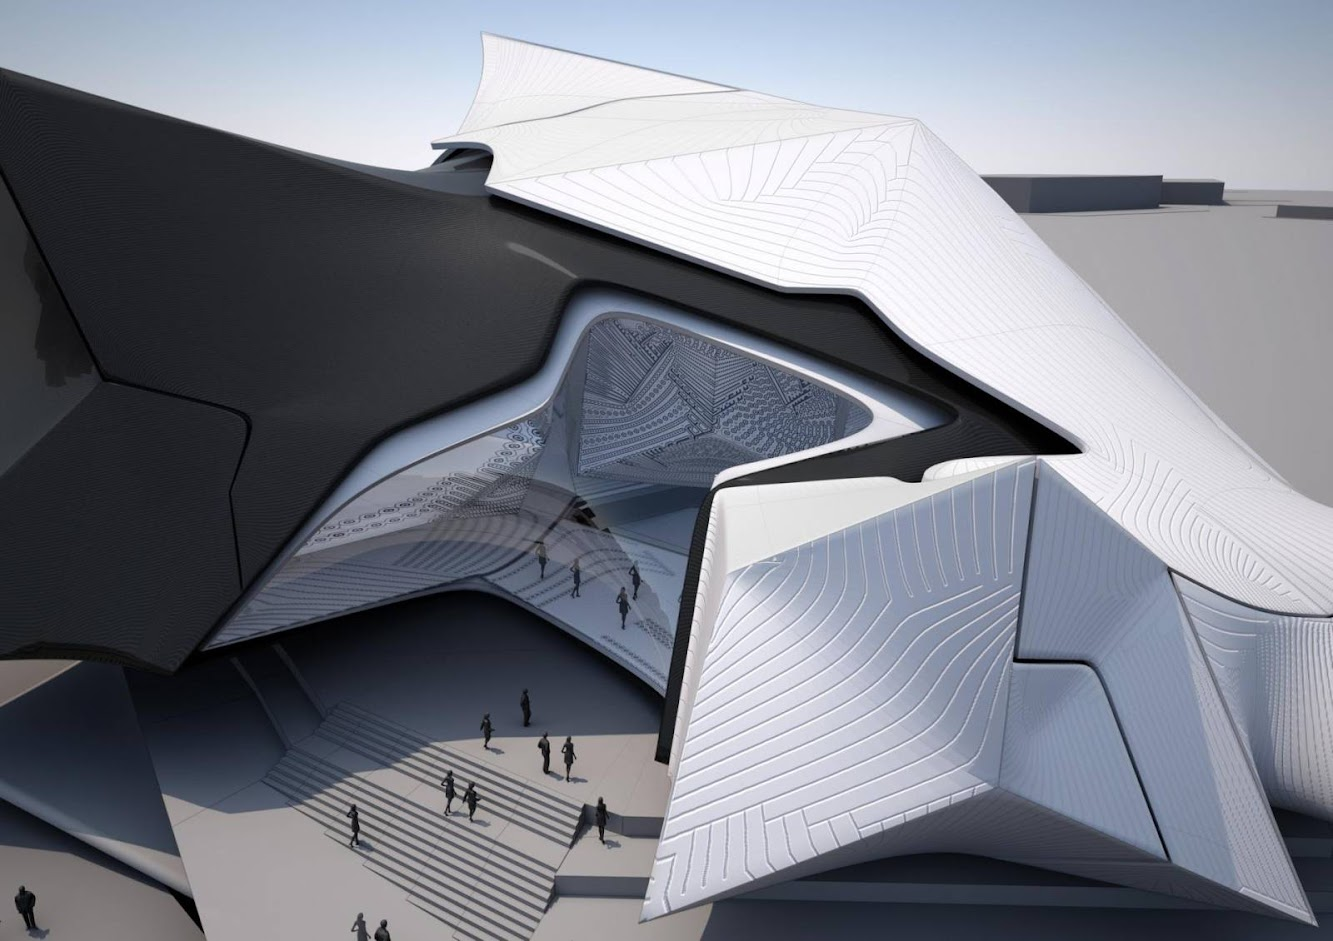 Sofia, Bulgaria: Collider Activity Center by Tom Wiscombe Design